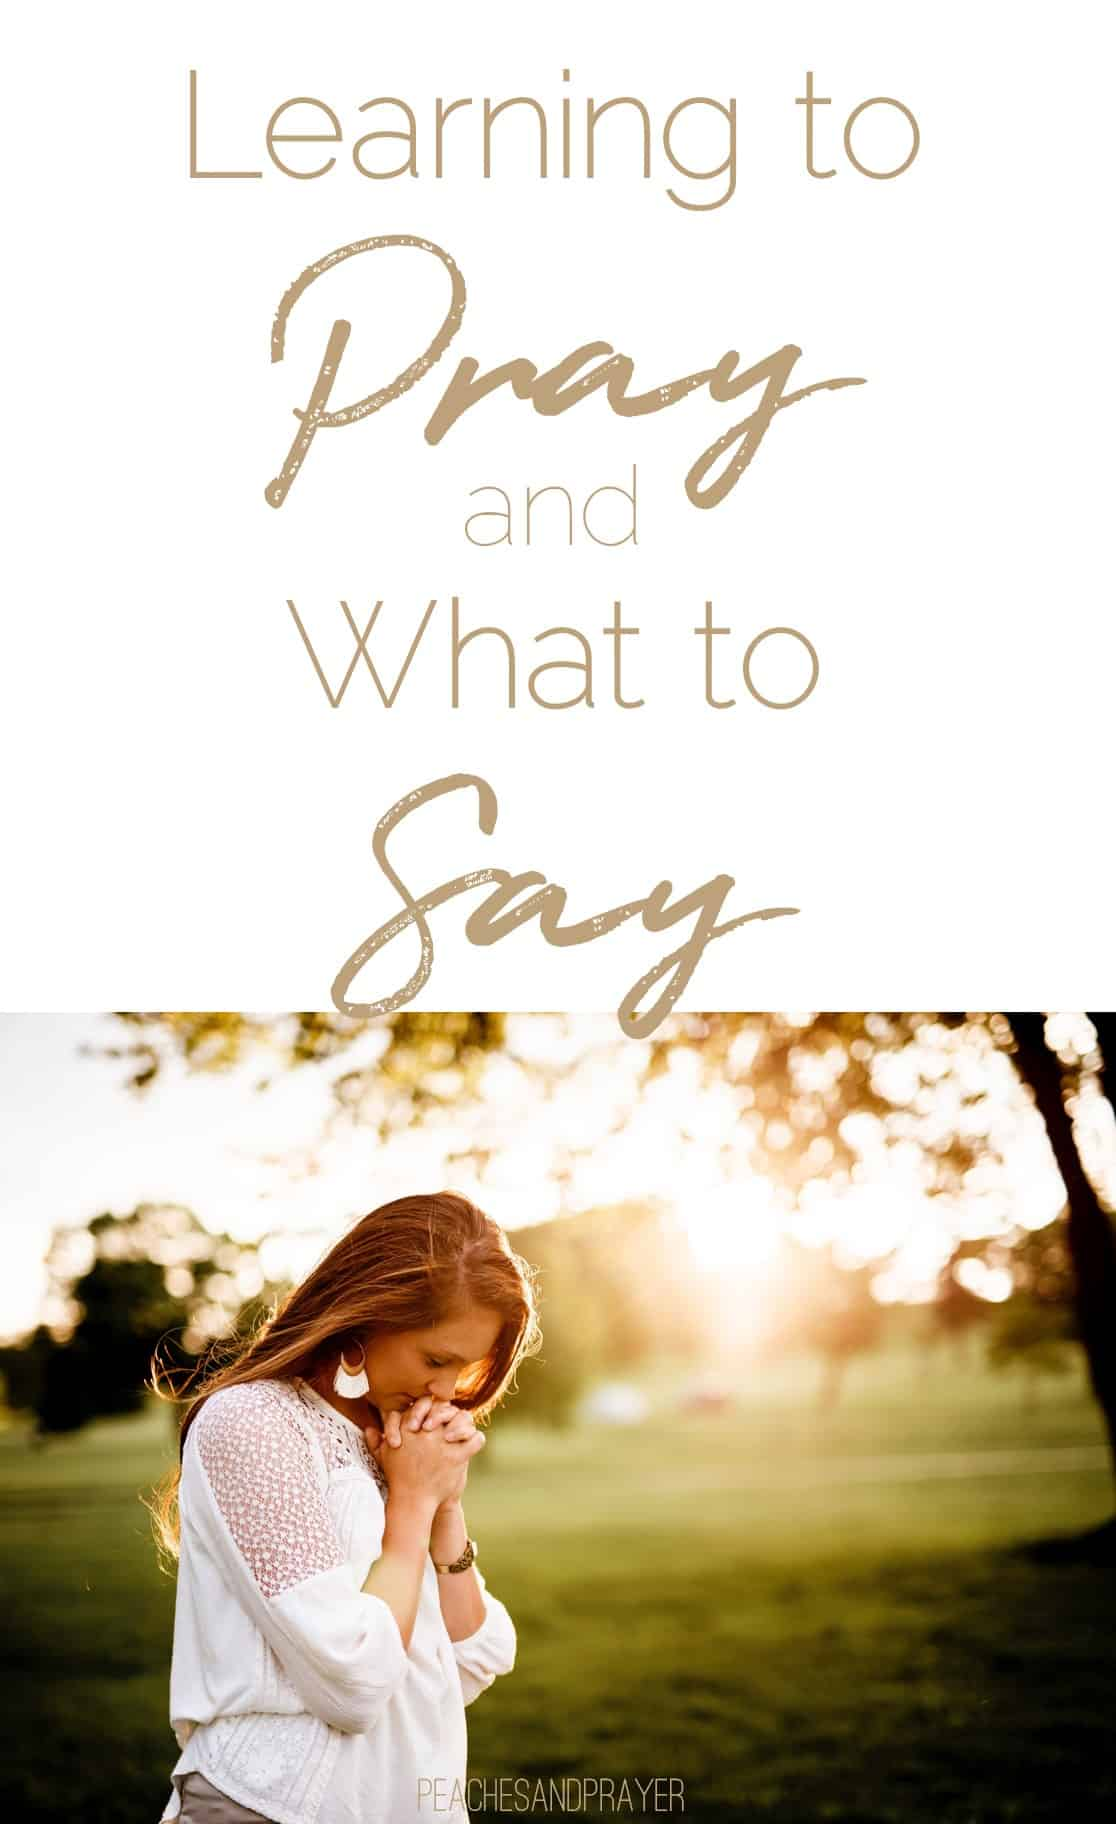 Learn to pray and what to say